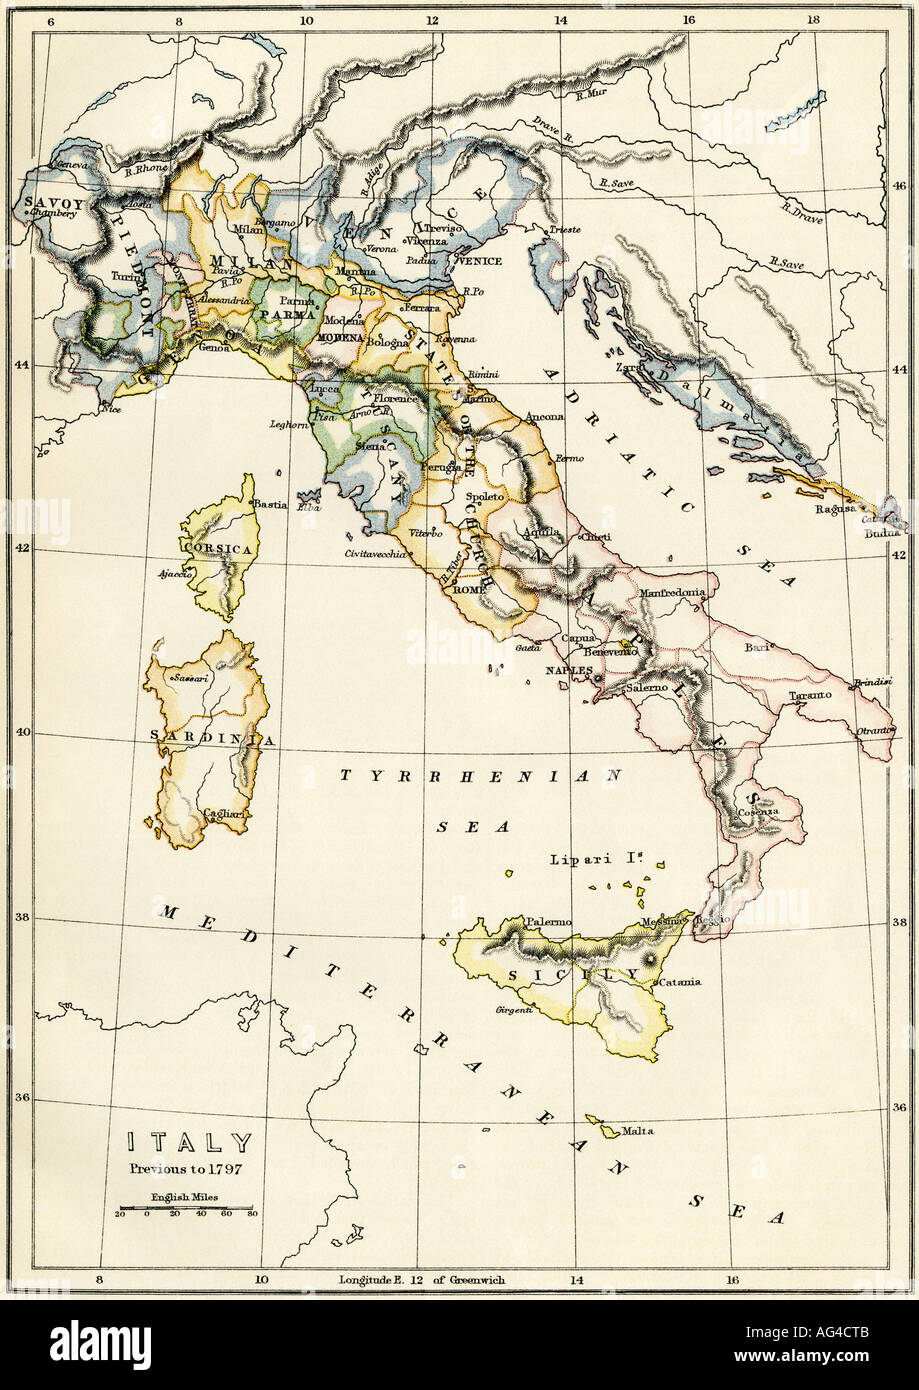 Map of Italy showing political divisions before 1797. Color lithograph - Stock Image